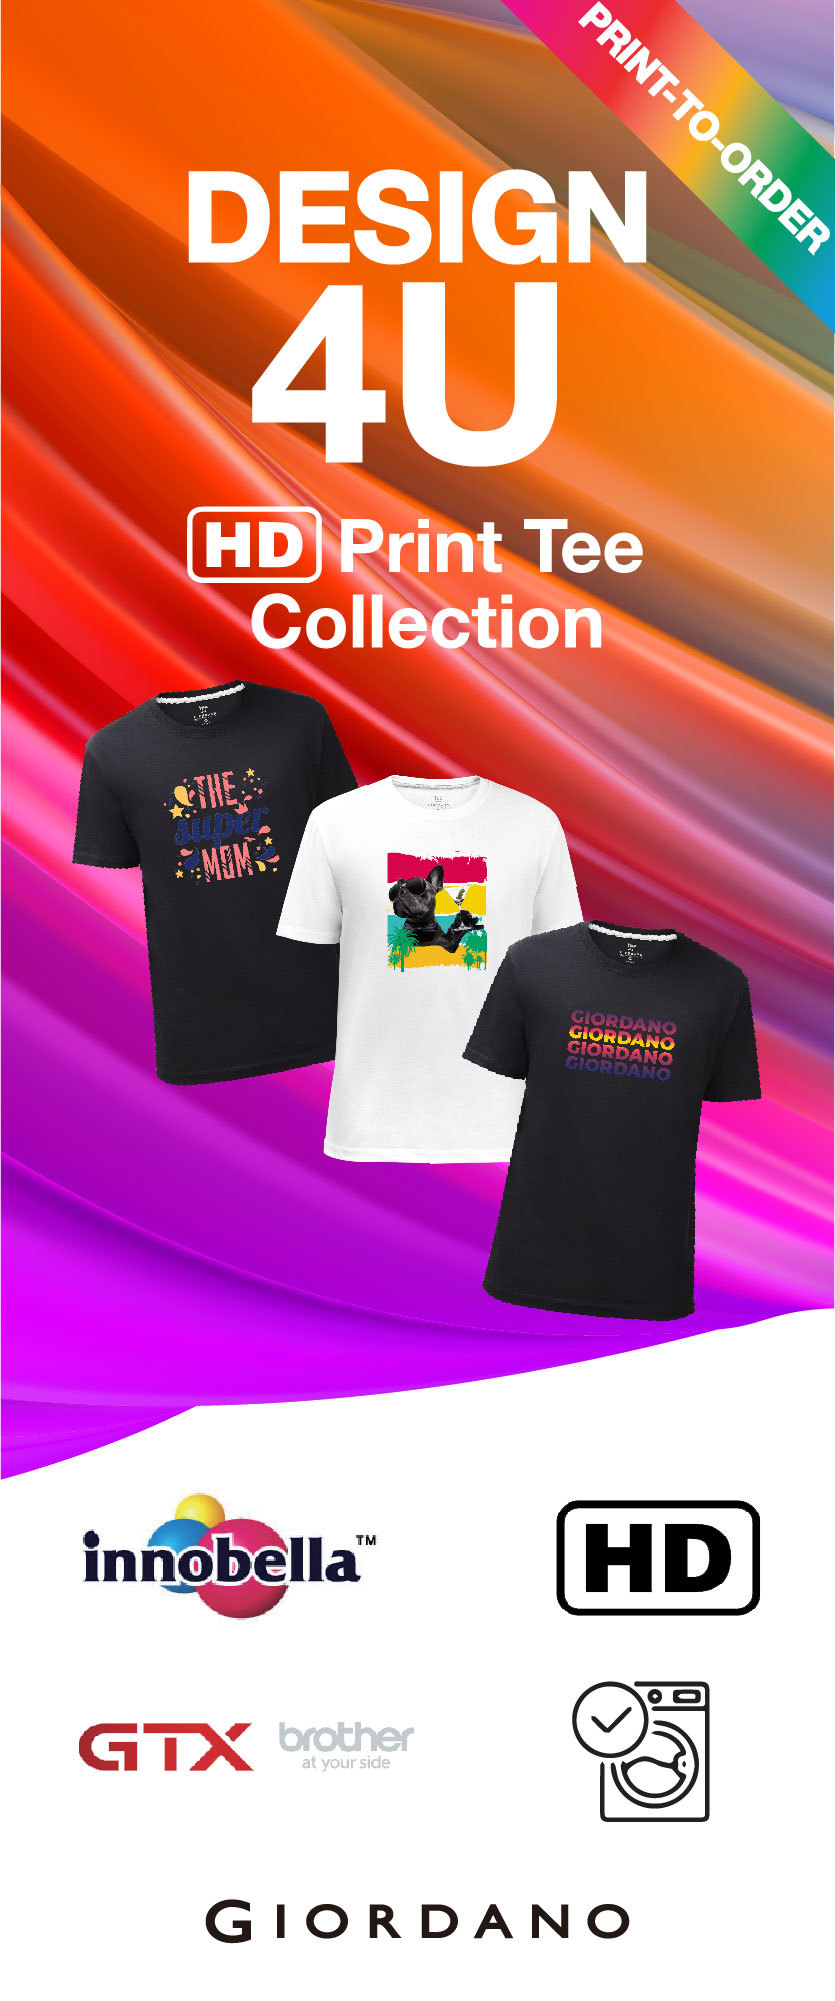 Giordano HD Print Tee Collection